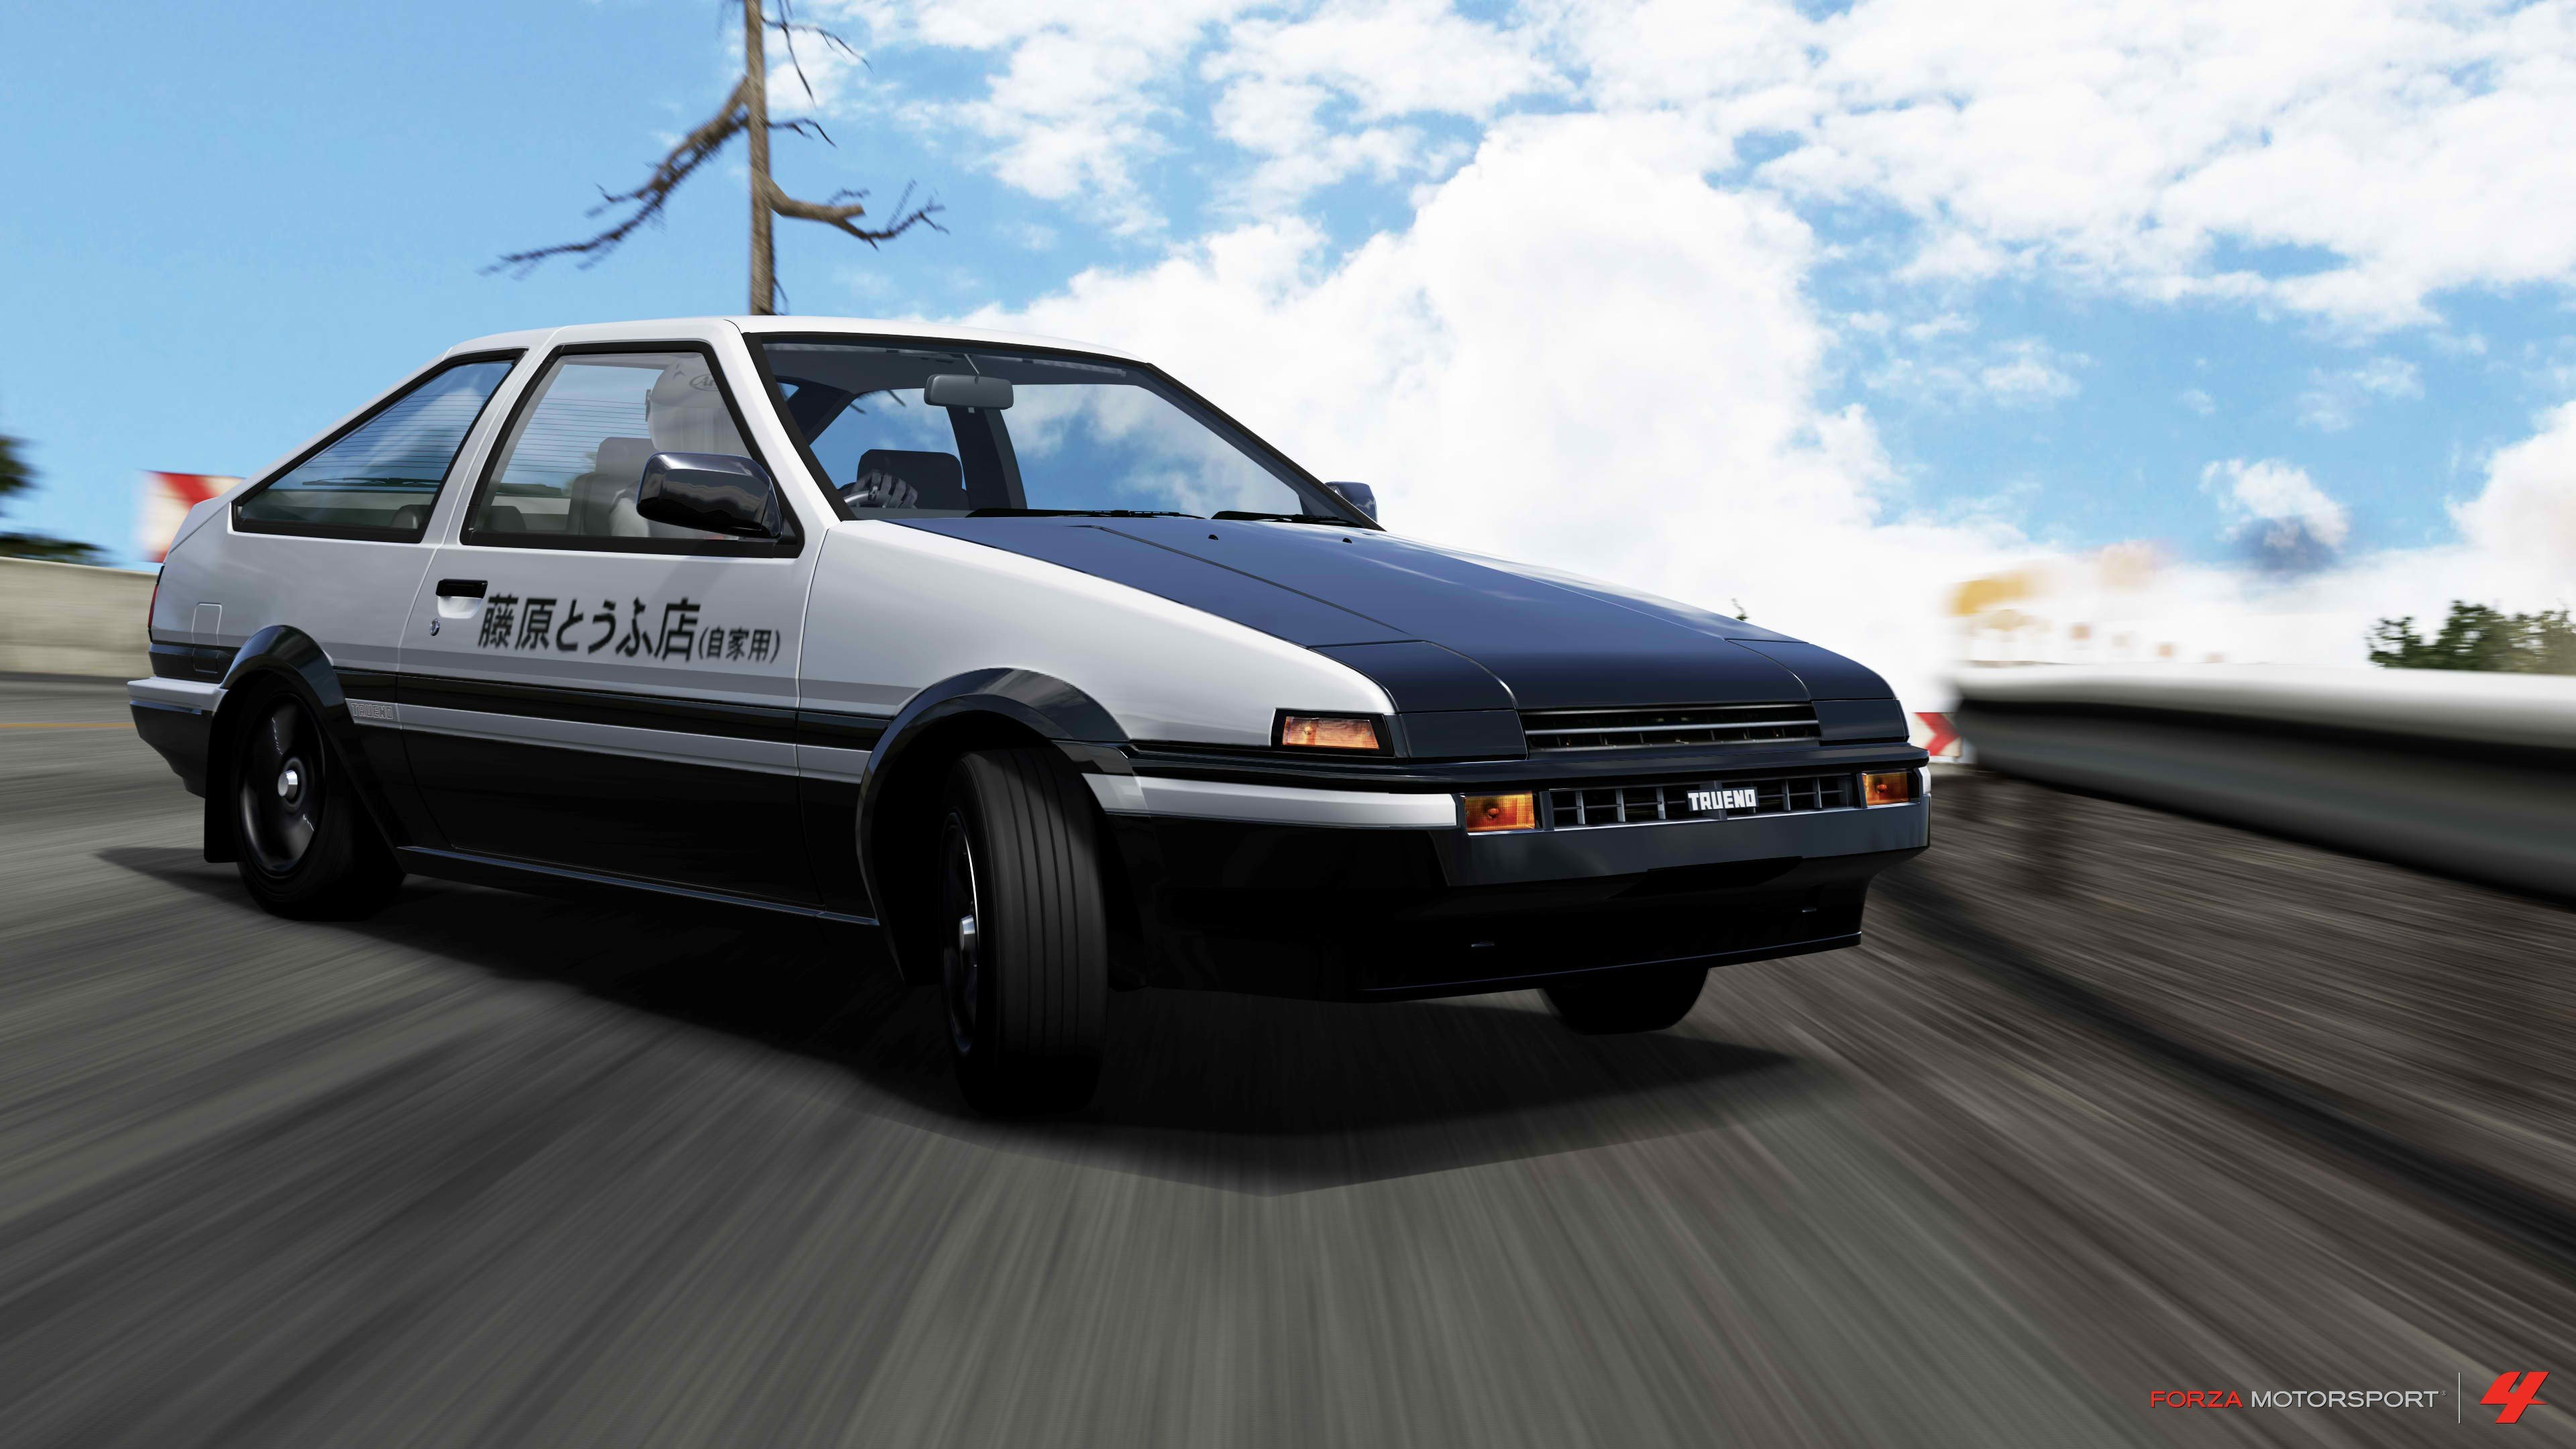 34 best japanese retro car images on pinterest japanese cars toyota corolla and jdm cars